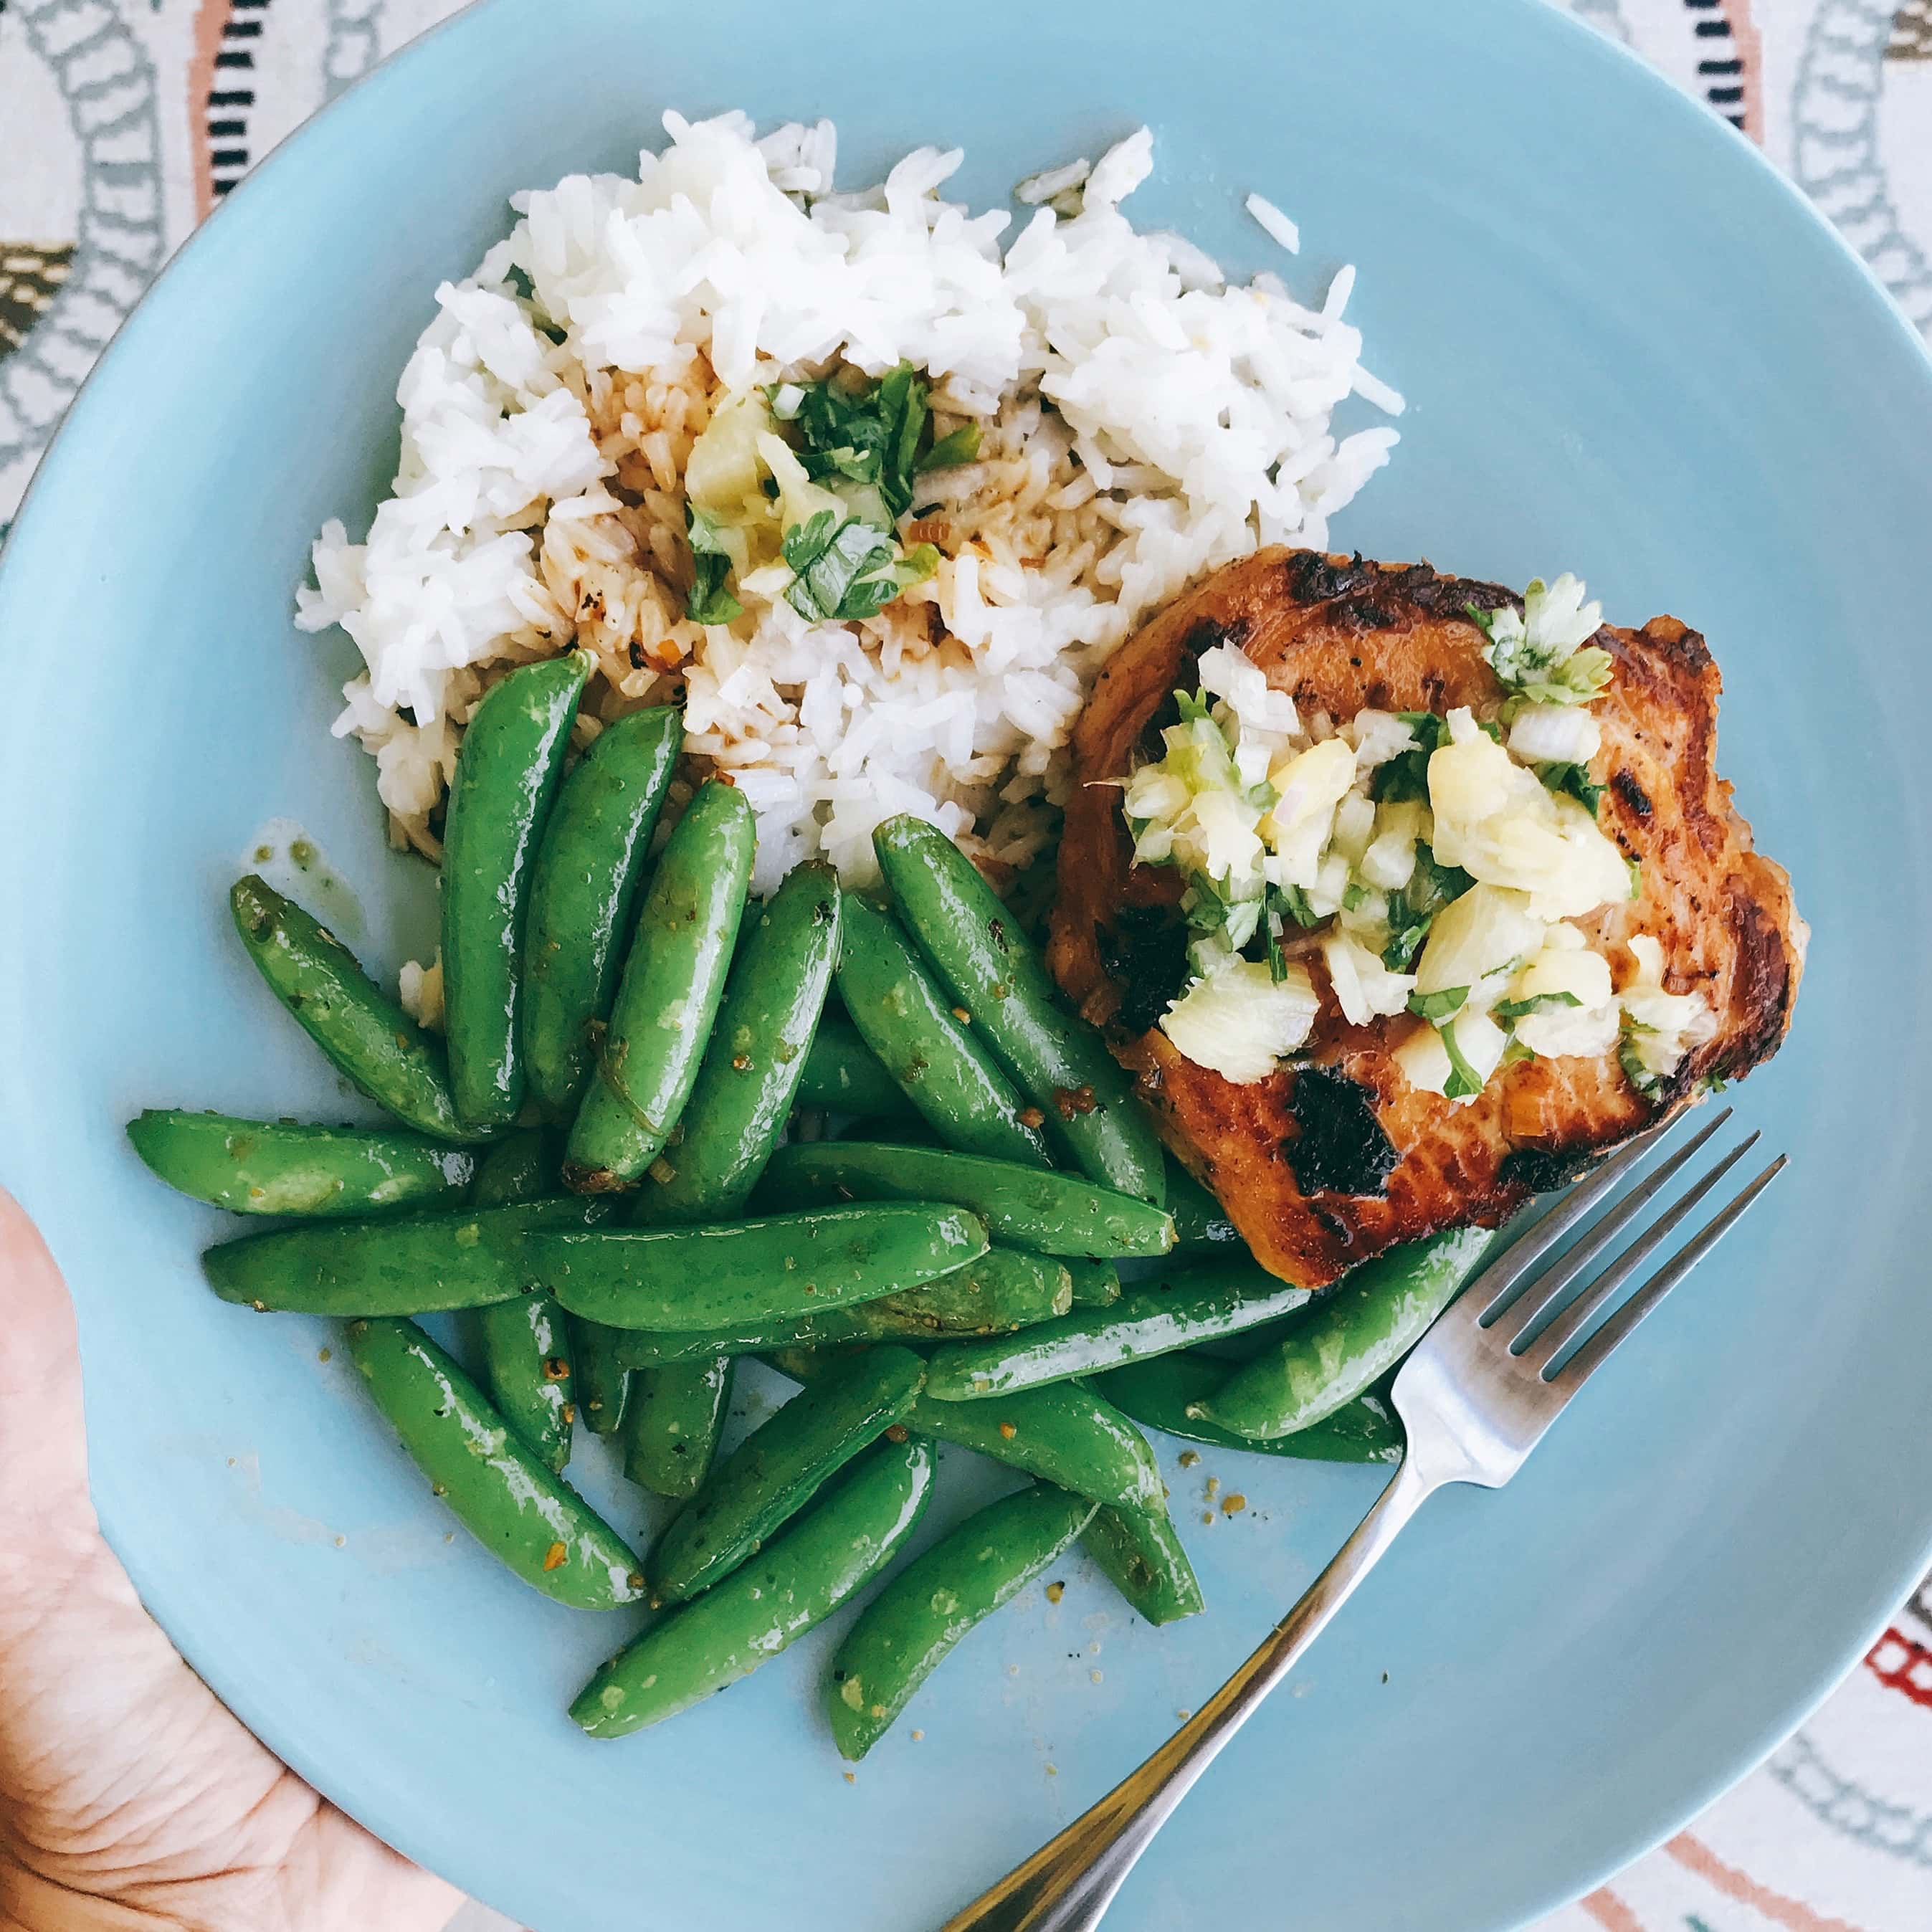 This Week's Nutrition Adventures! HelloFresh | The Nutrition Adventure